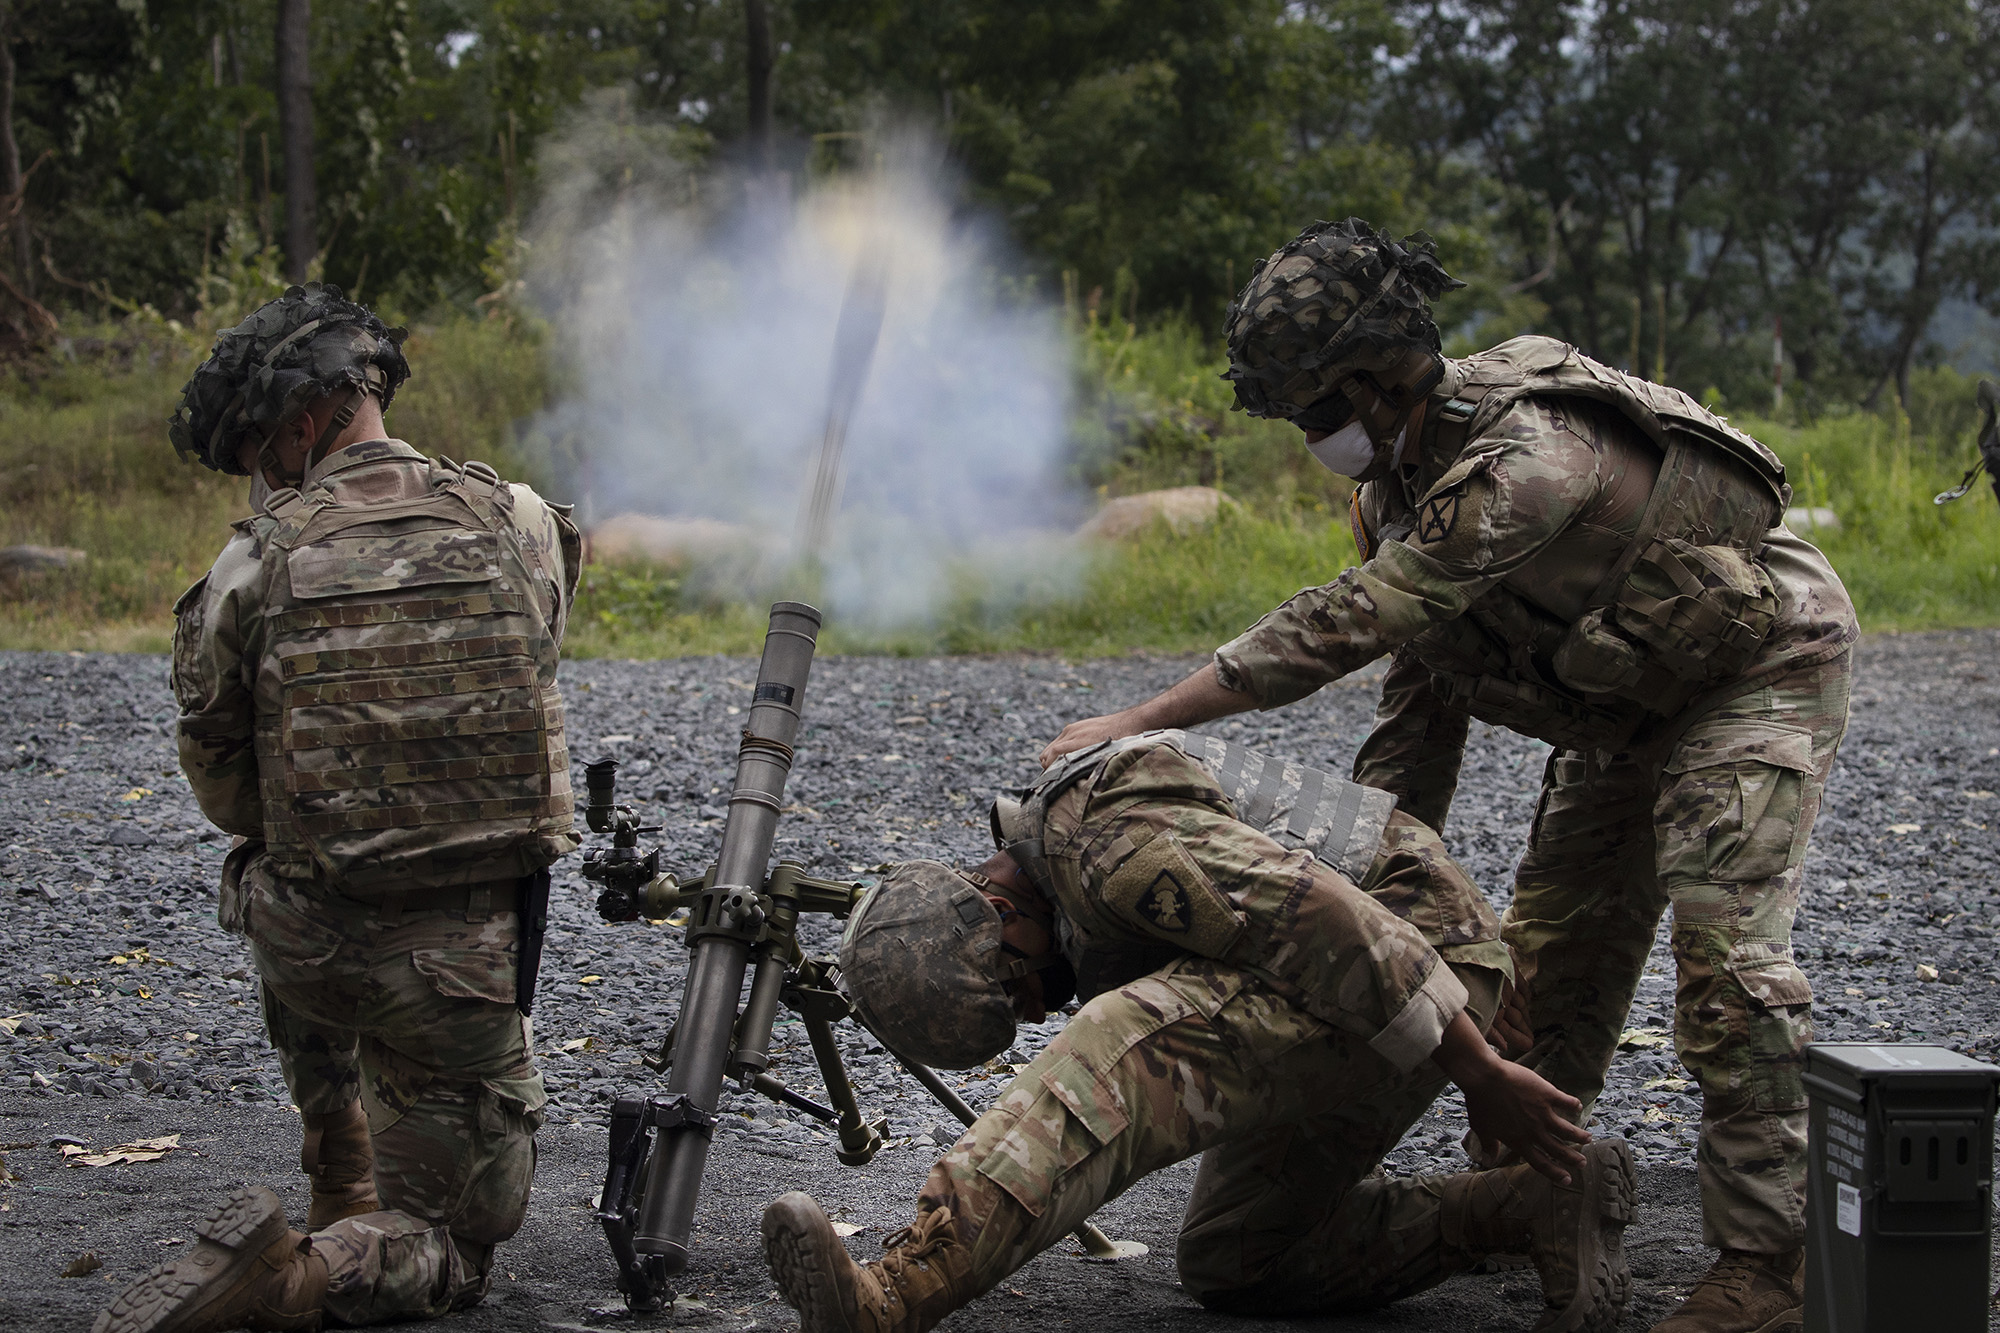 Cadets learn to fire mortars, Friday, Aug. 7, 2020, at the U.S. Military Academy in West Point, N.Y. (Mark Lennihan/AP)